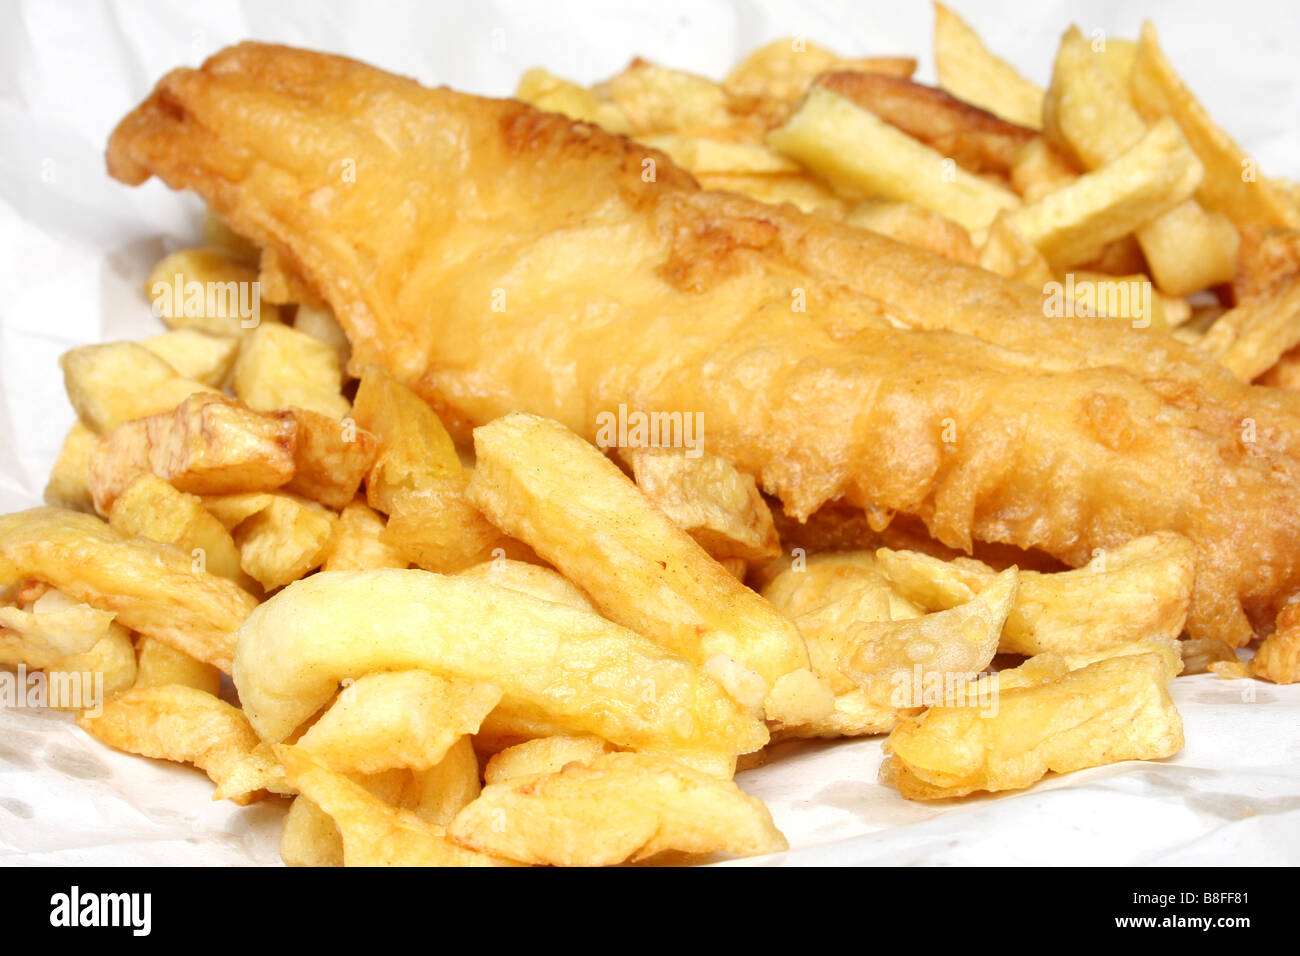 Fish and chips from a chip shop. - Stock Image